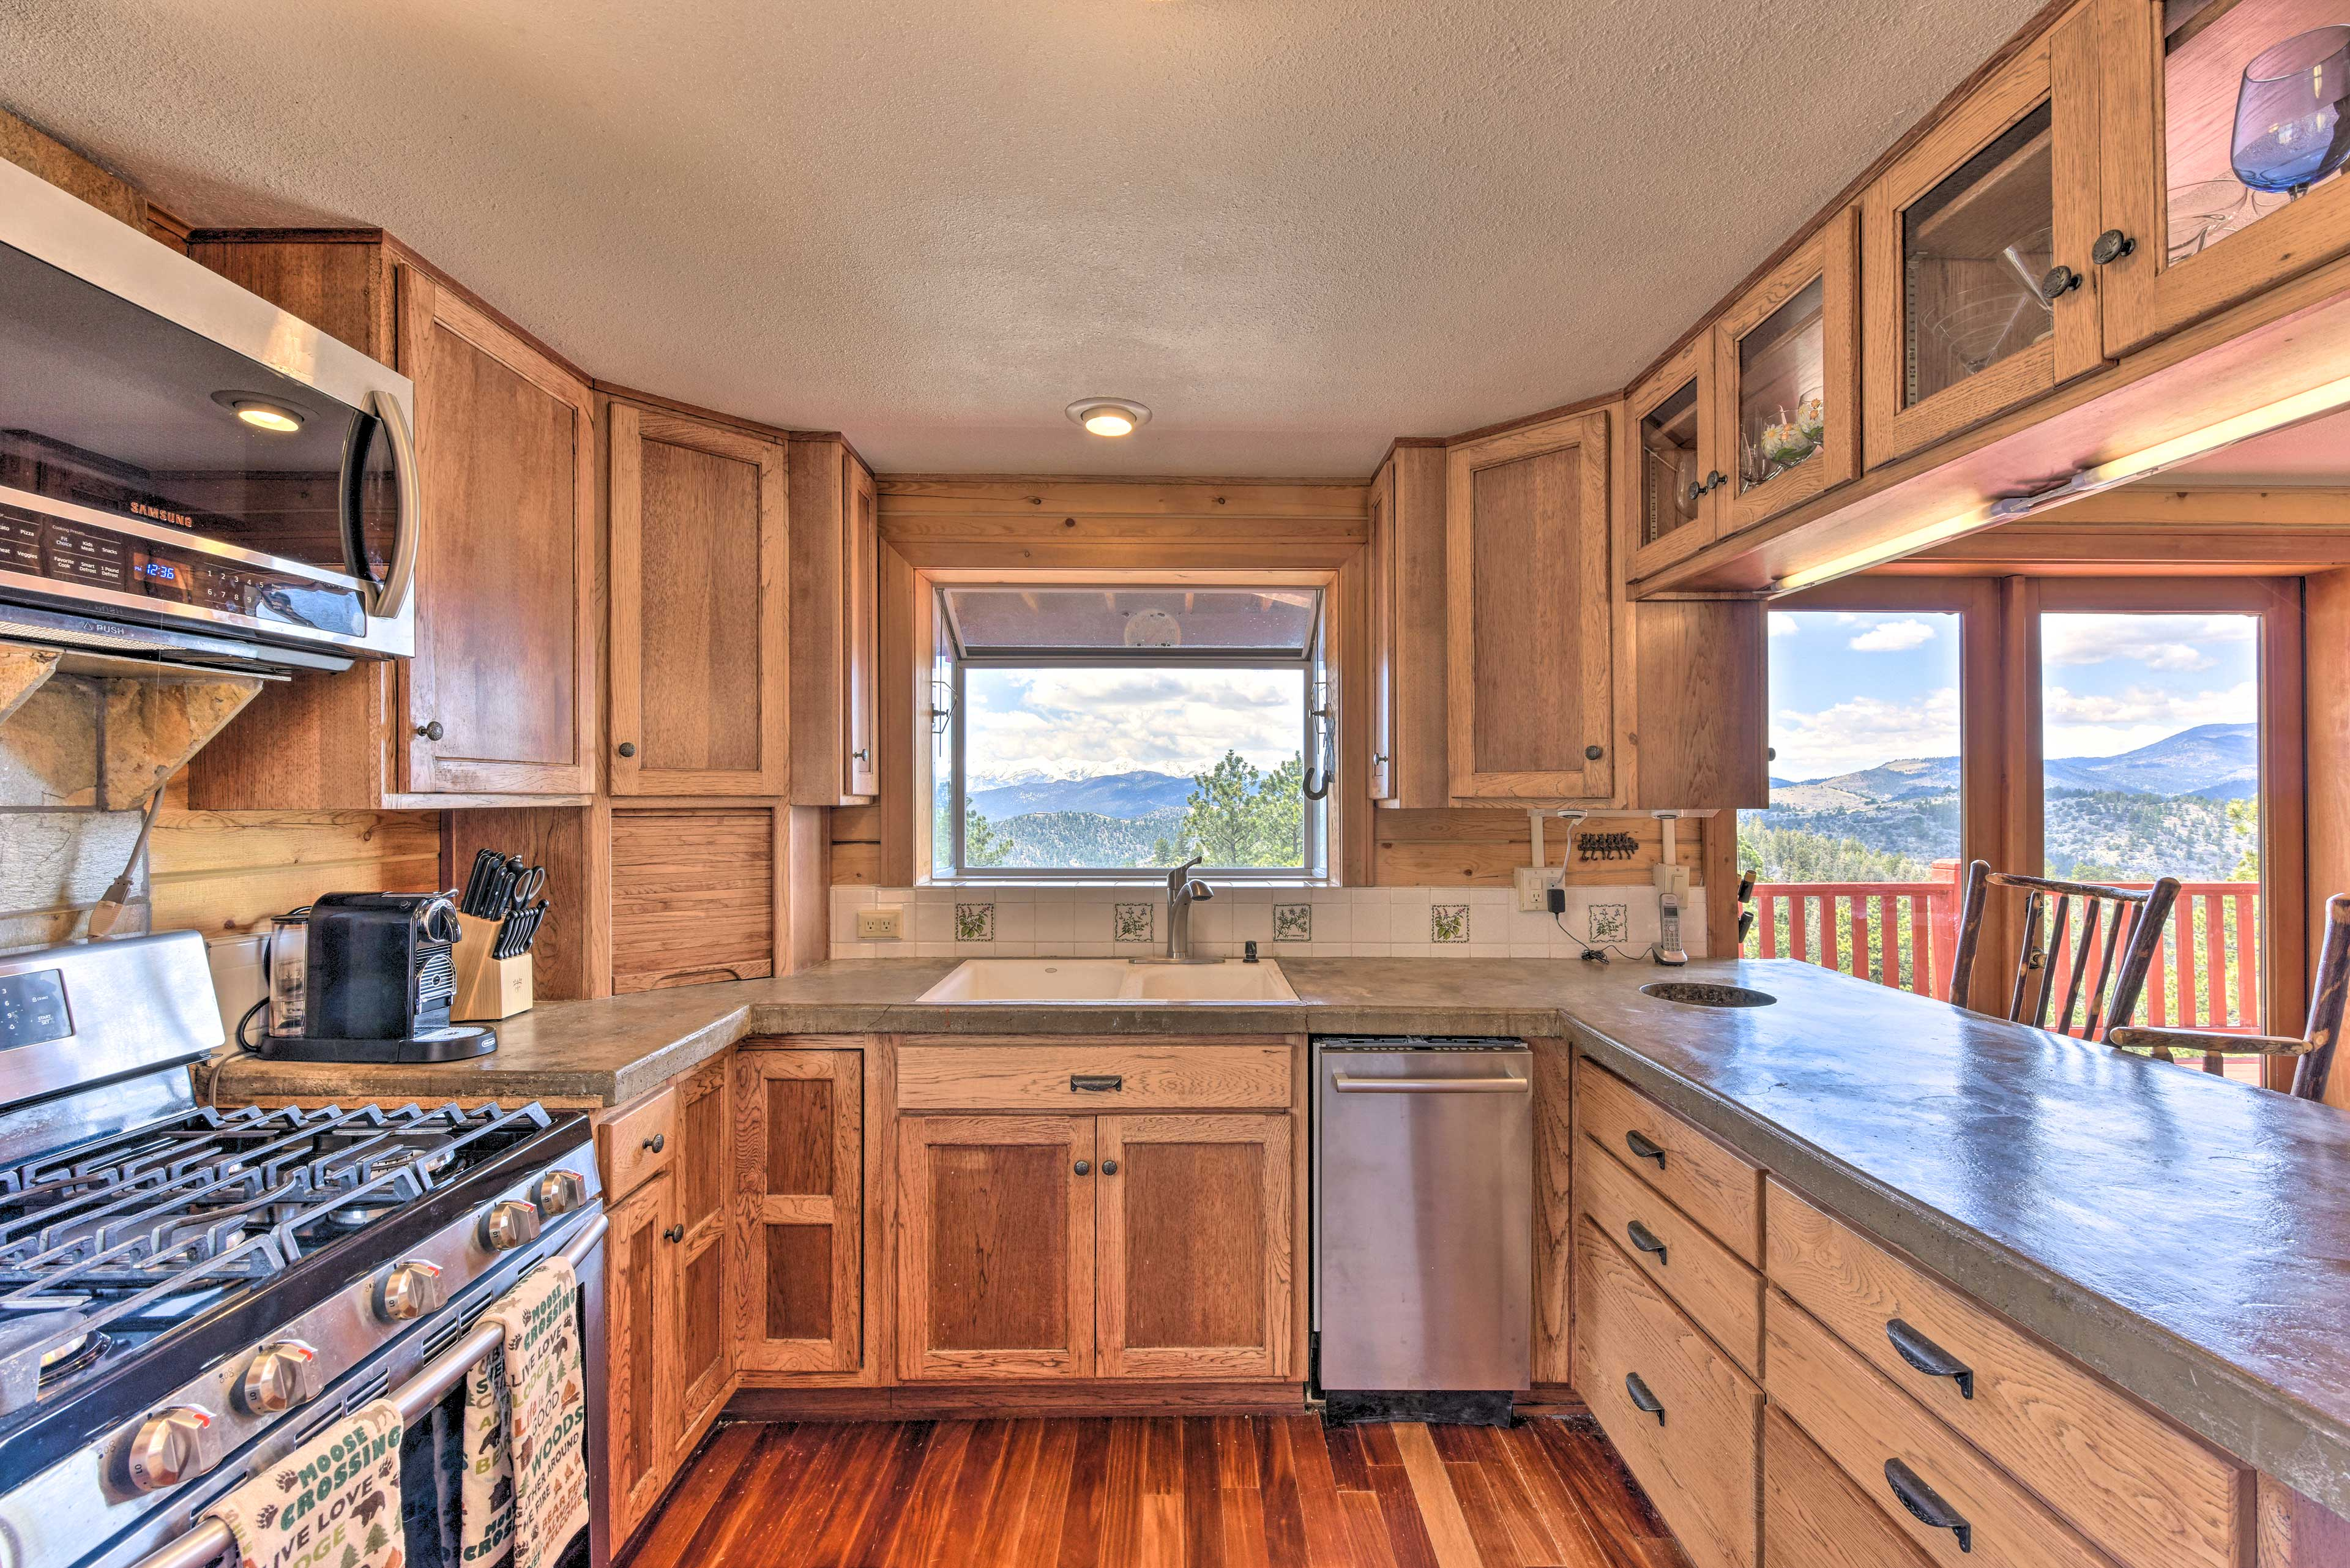 Show off your creative culinary skills in the fully equipped kitchen.